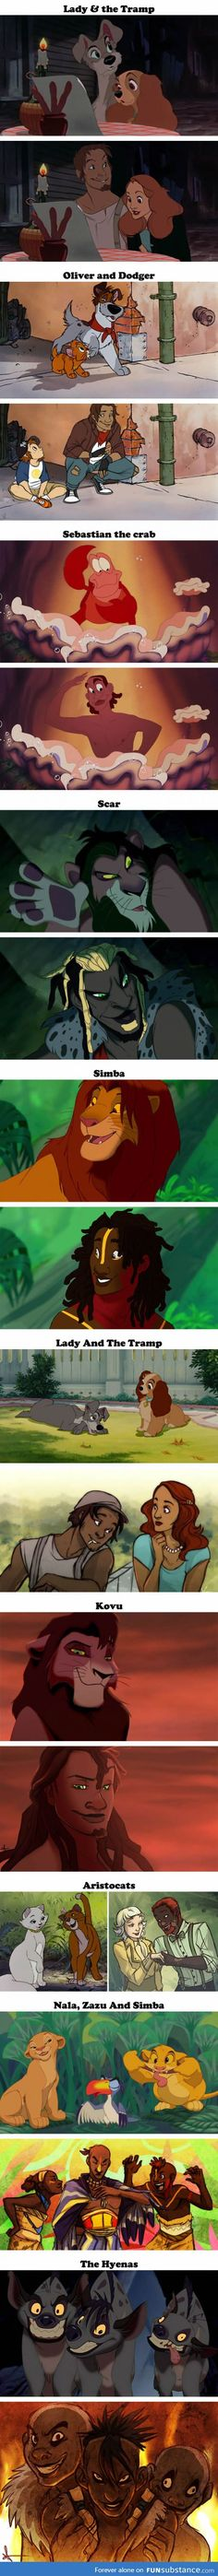 Famous Disney characters as ethnically correct humans